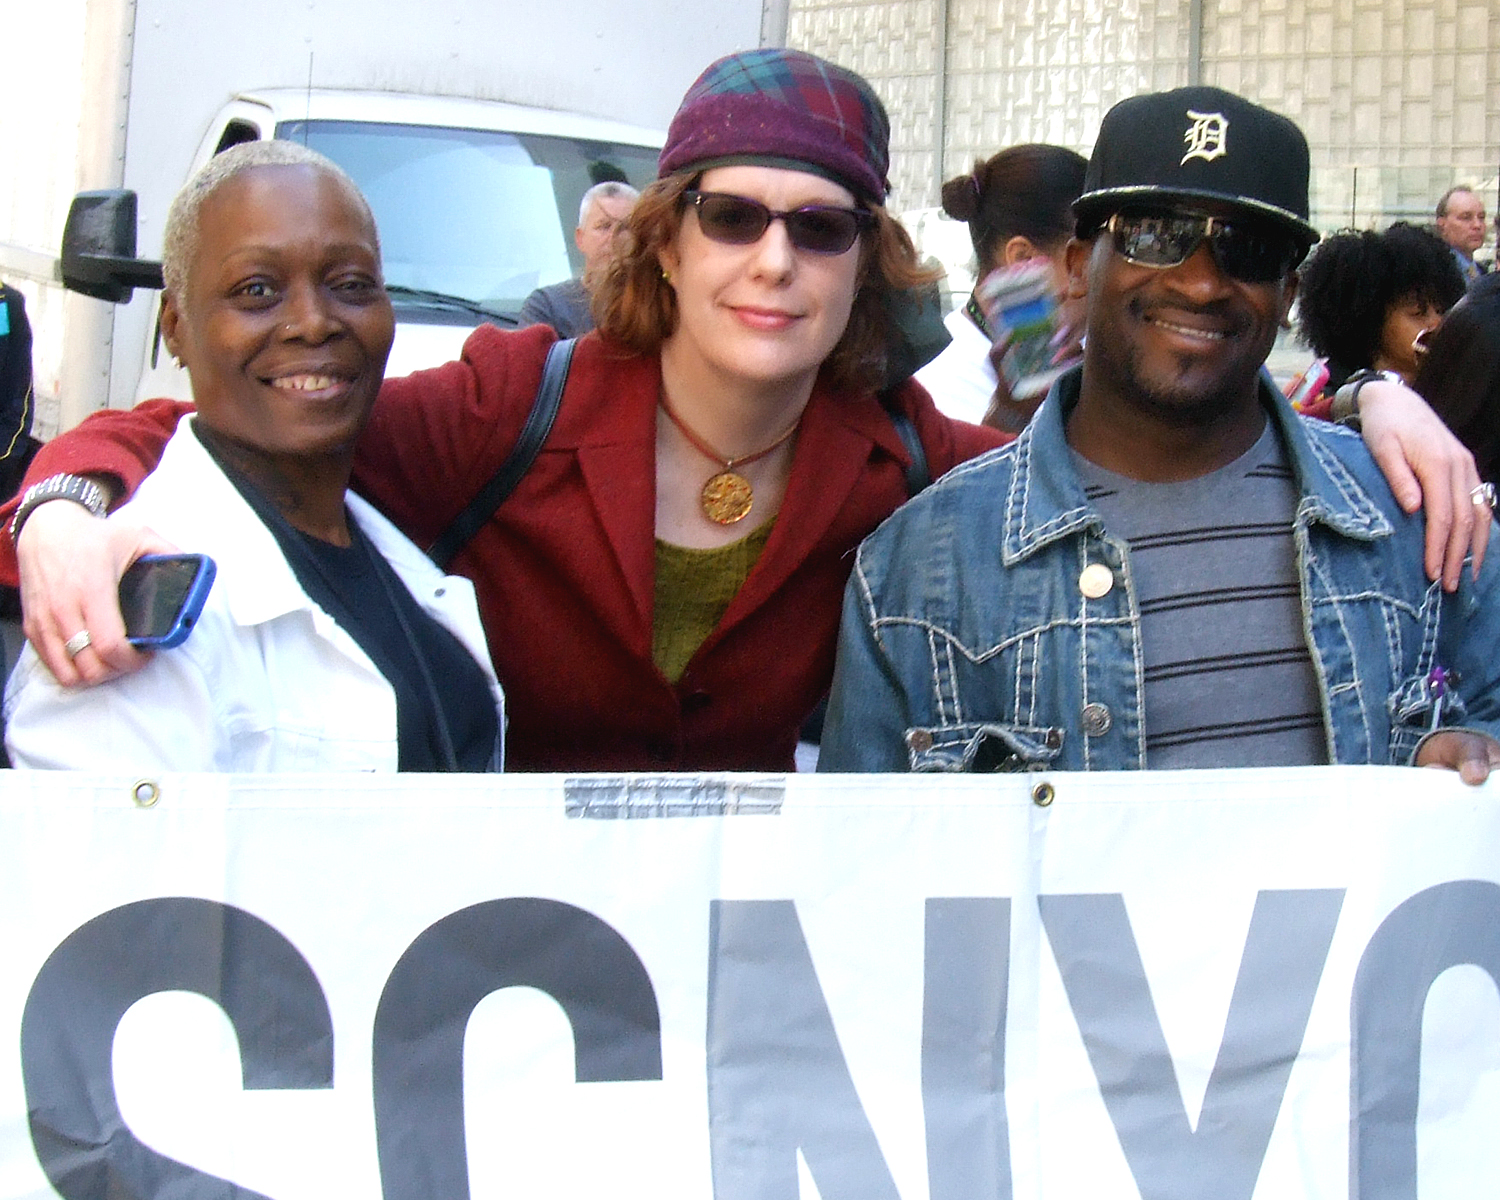 ASCNYC Staff Members Marcy Thompson and Derrick Flowers with an ASCNYC Peer